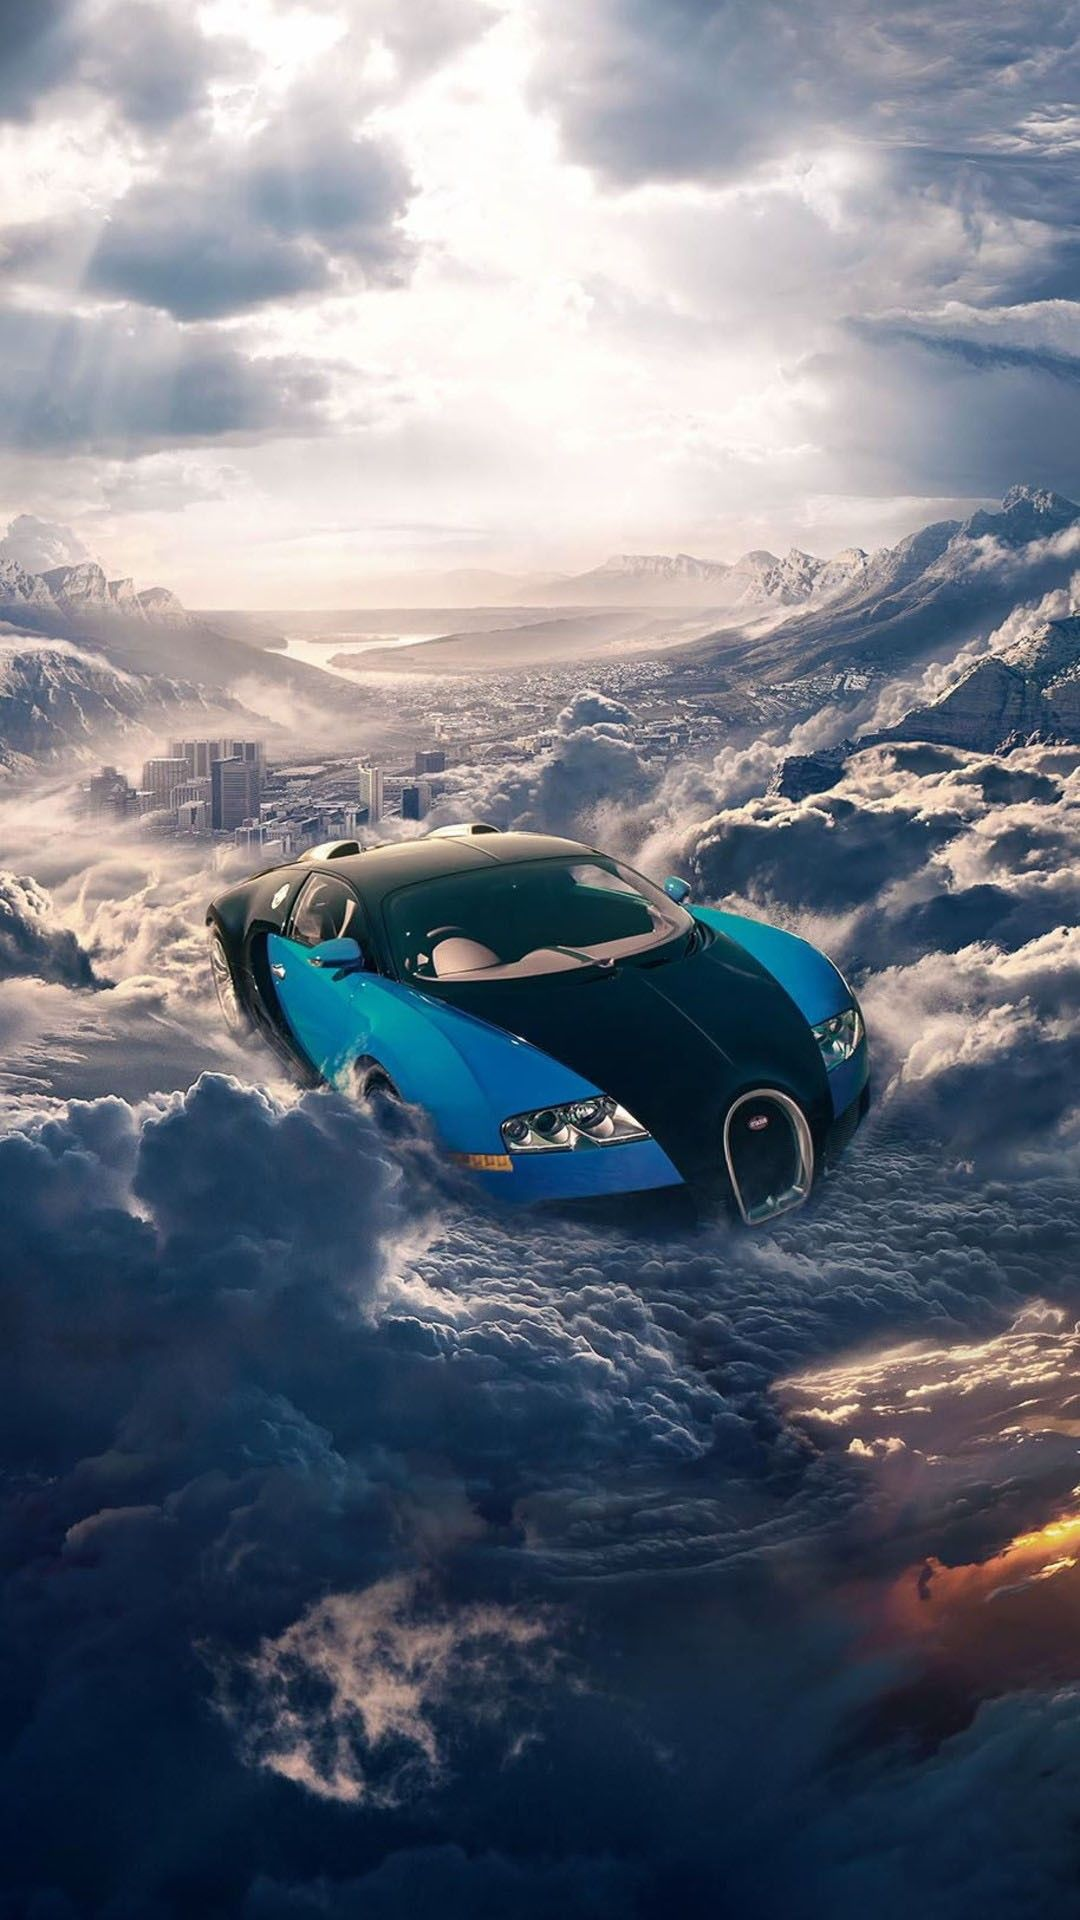 Pin By Mayk On Coches De Ensueno Dream Cars Airplane View Car Wallpapers